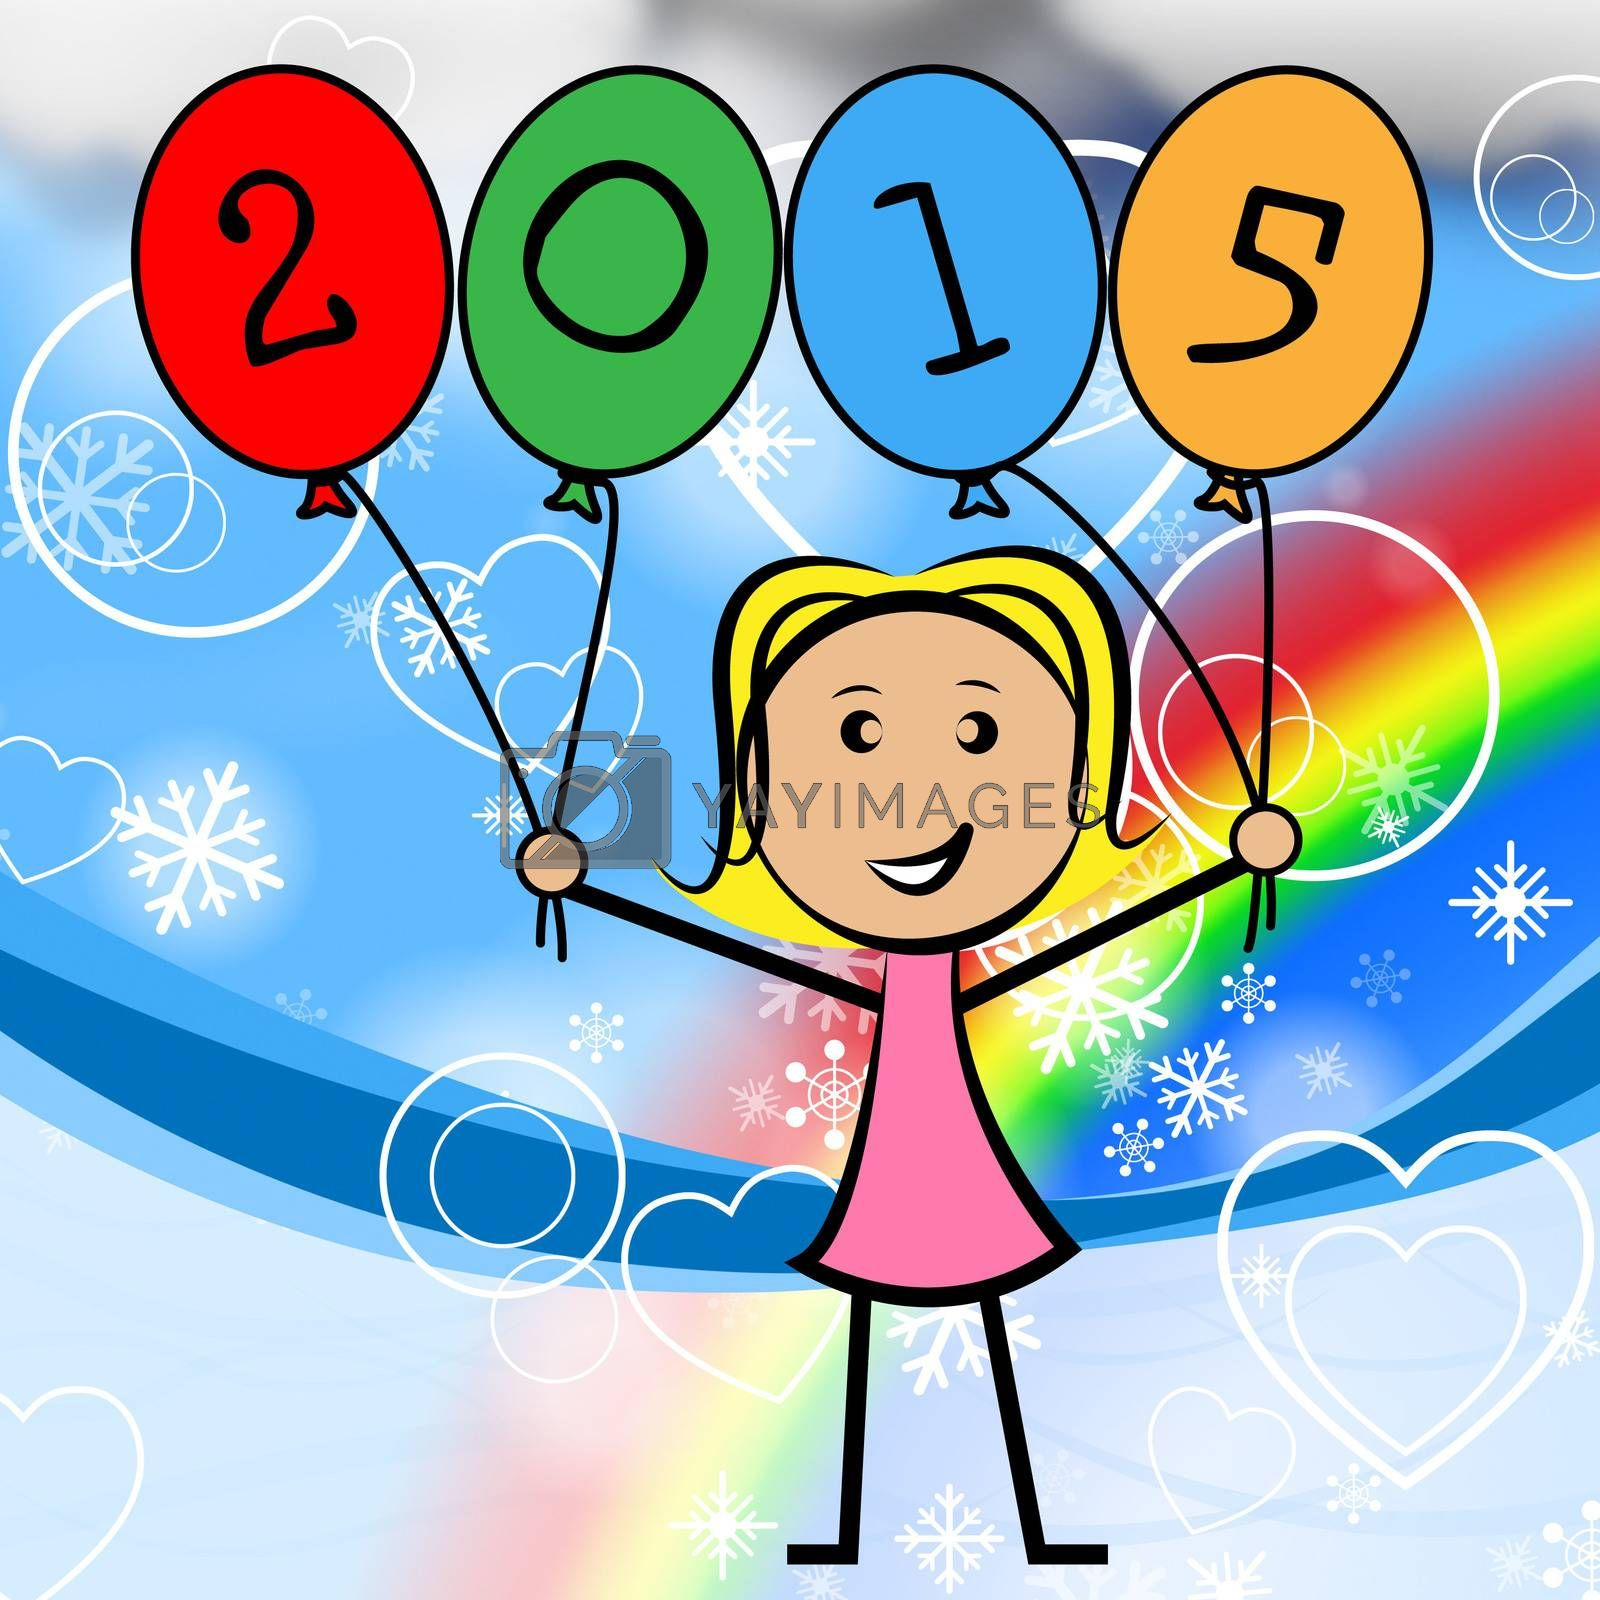 Twenty Fifteen Balloons Represents New Year And Kids by stuartmiles